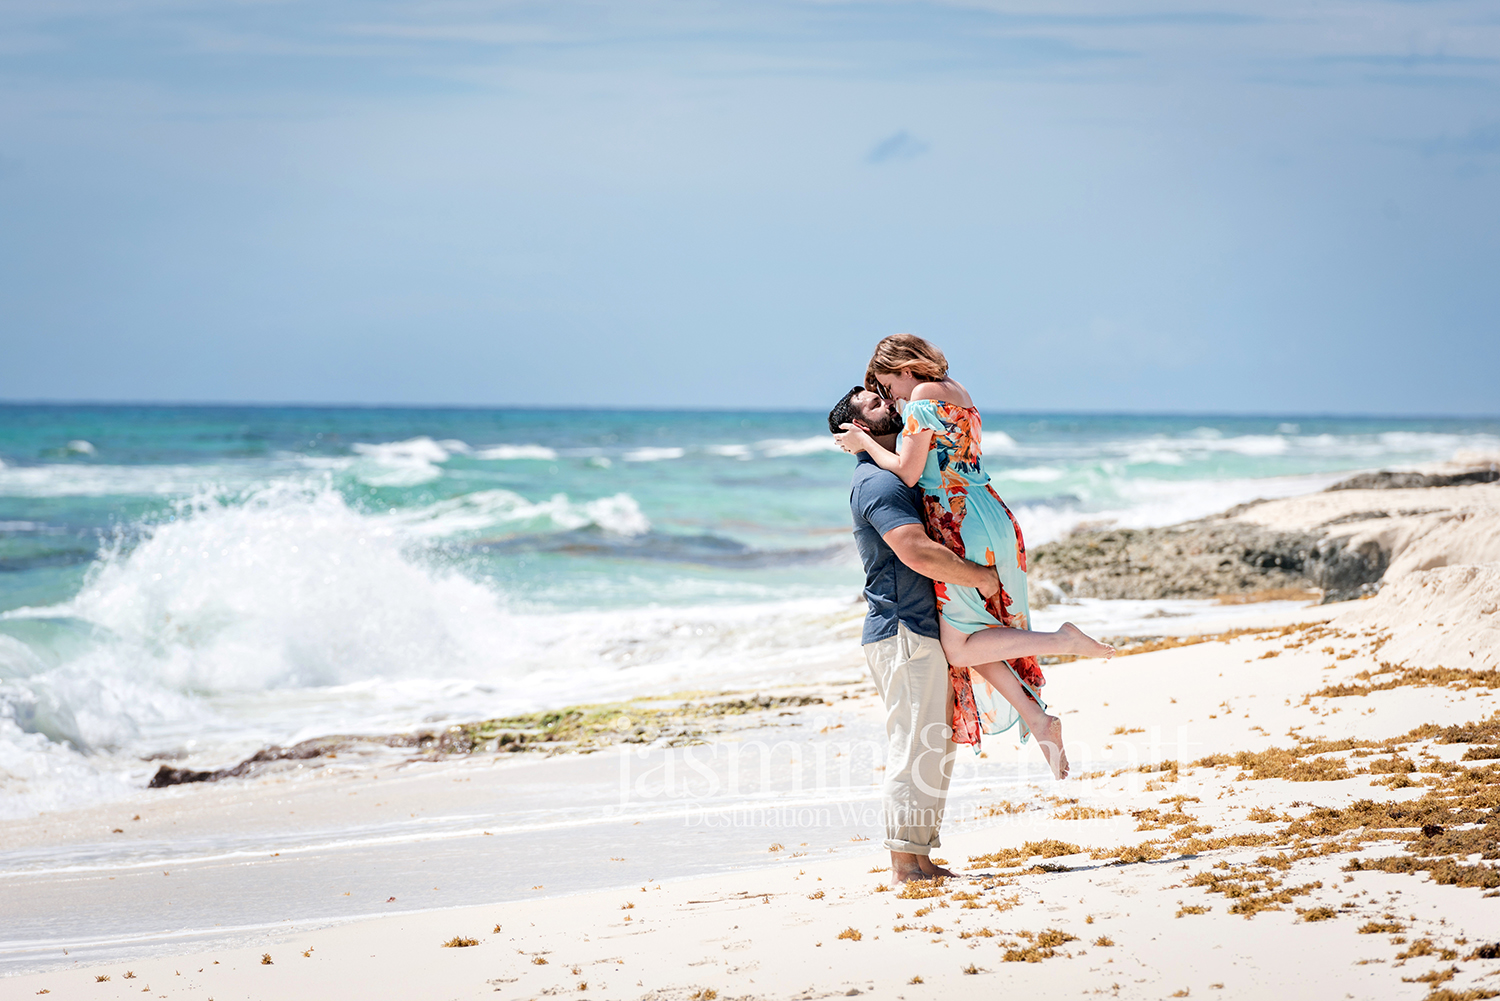 Destination Wedding Photography Packages & Pricing